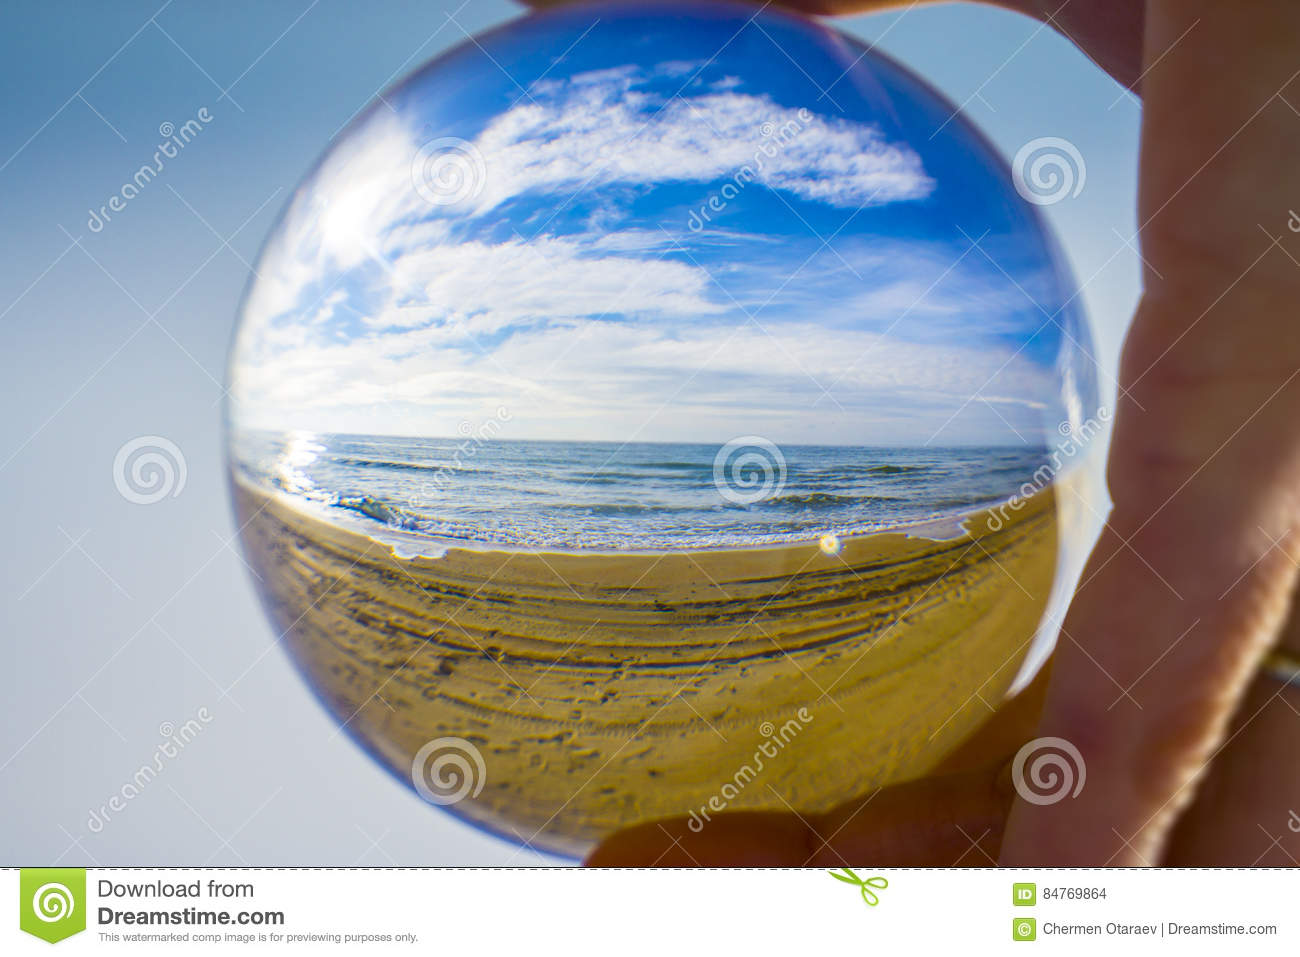 Glass ball. The fate of the planet Earth in human hands